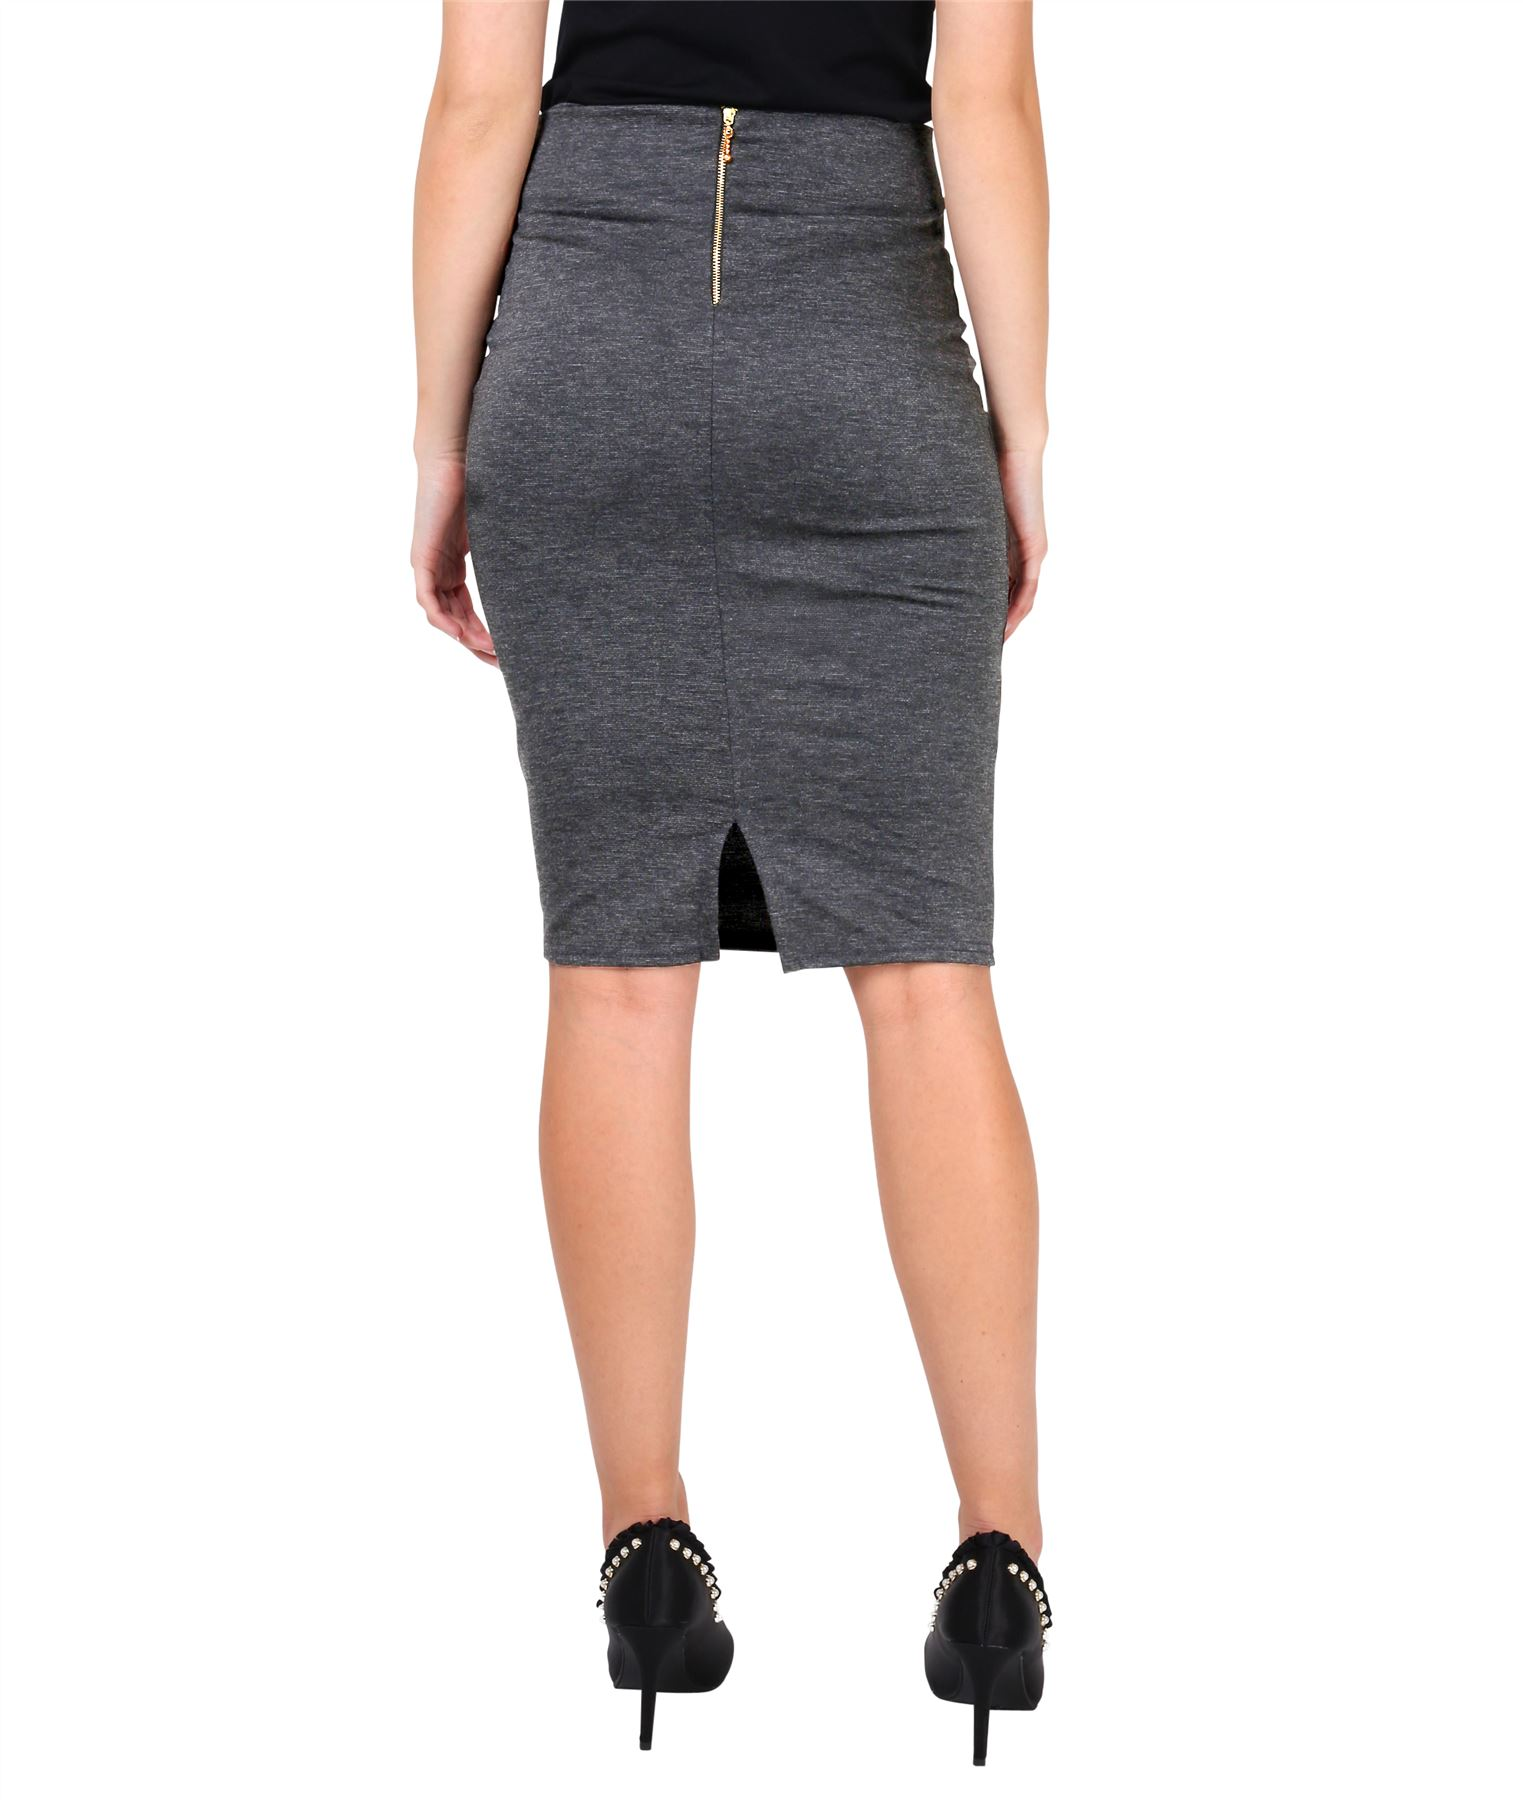 Womens-Ladies-Pencil-Skirt-Midi-Knee-Long-High-Waist-Work-Office-Business-Smart thumbnail 7